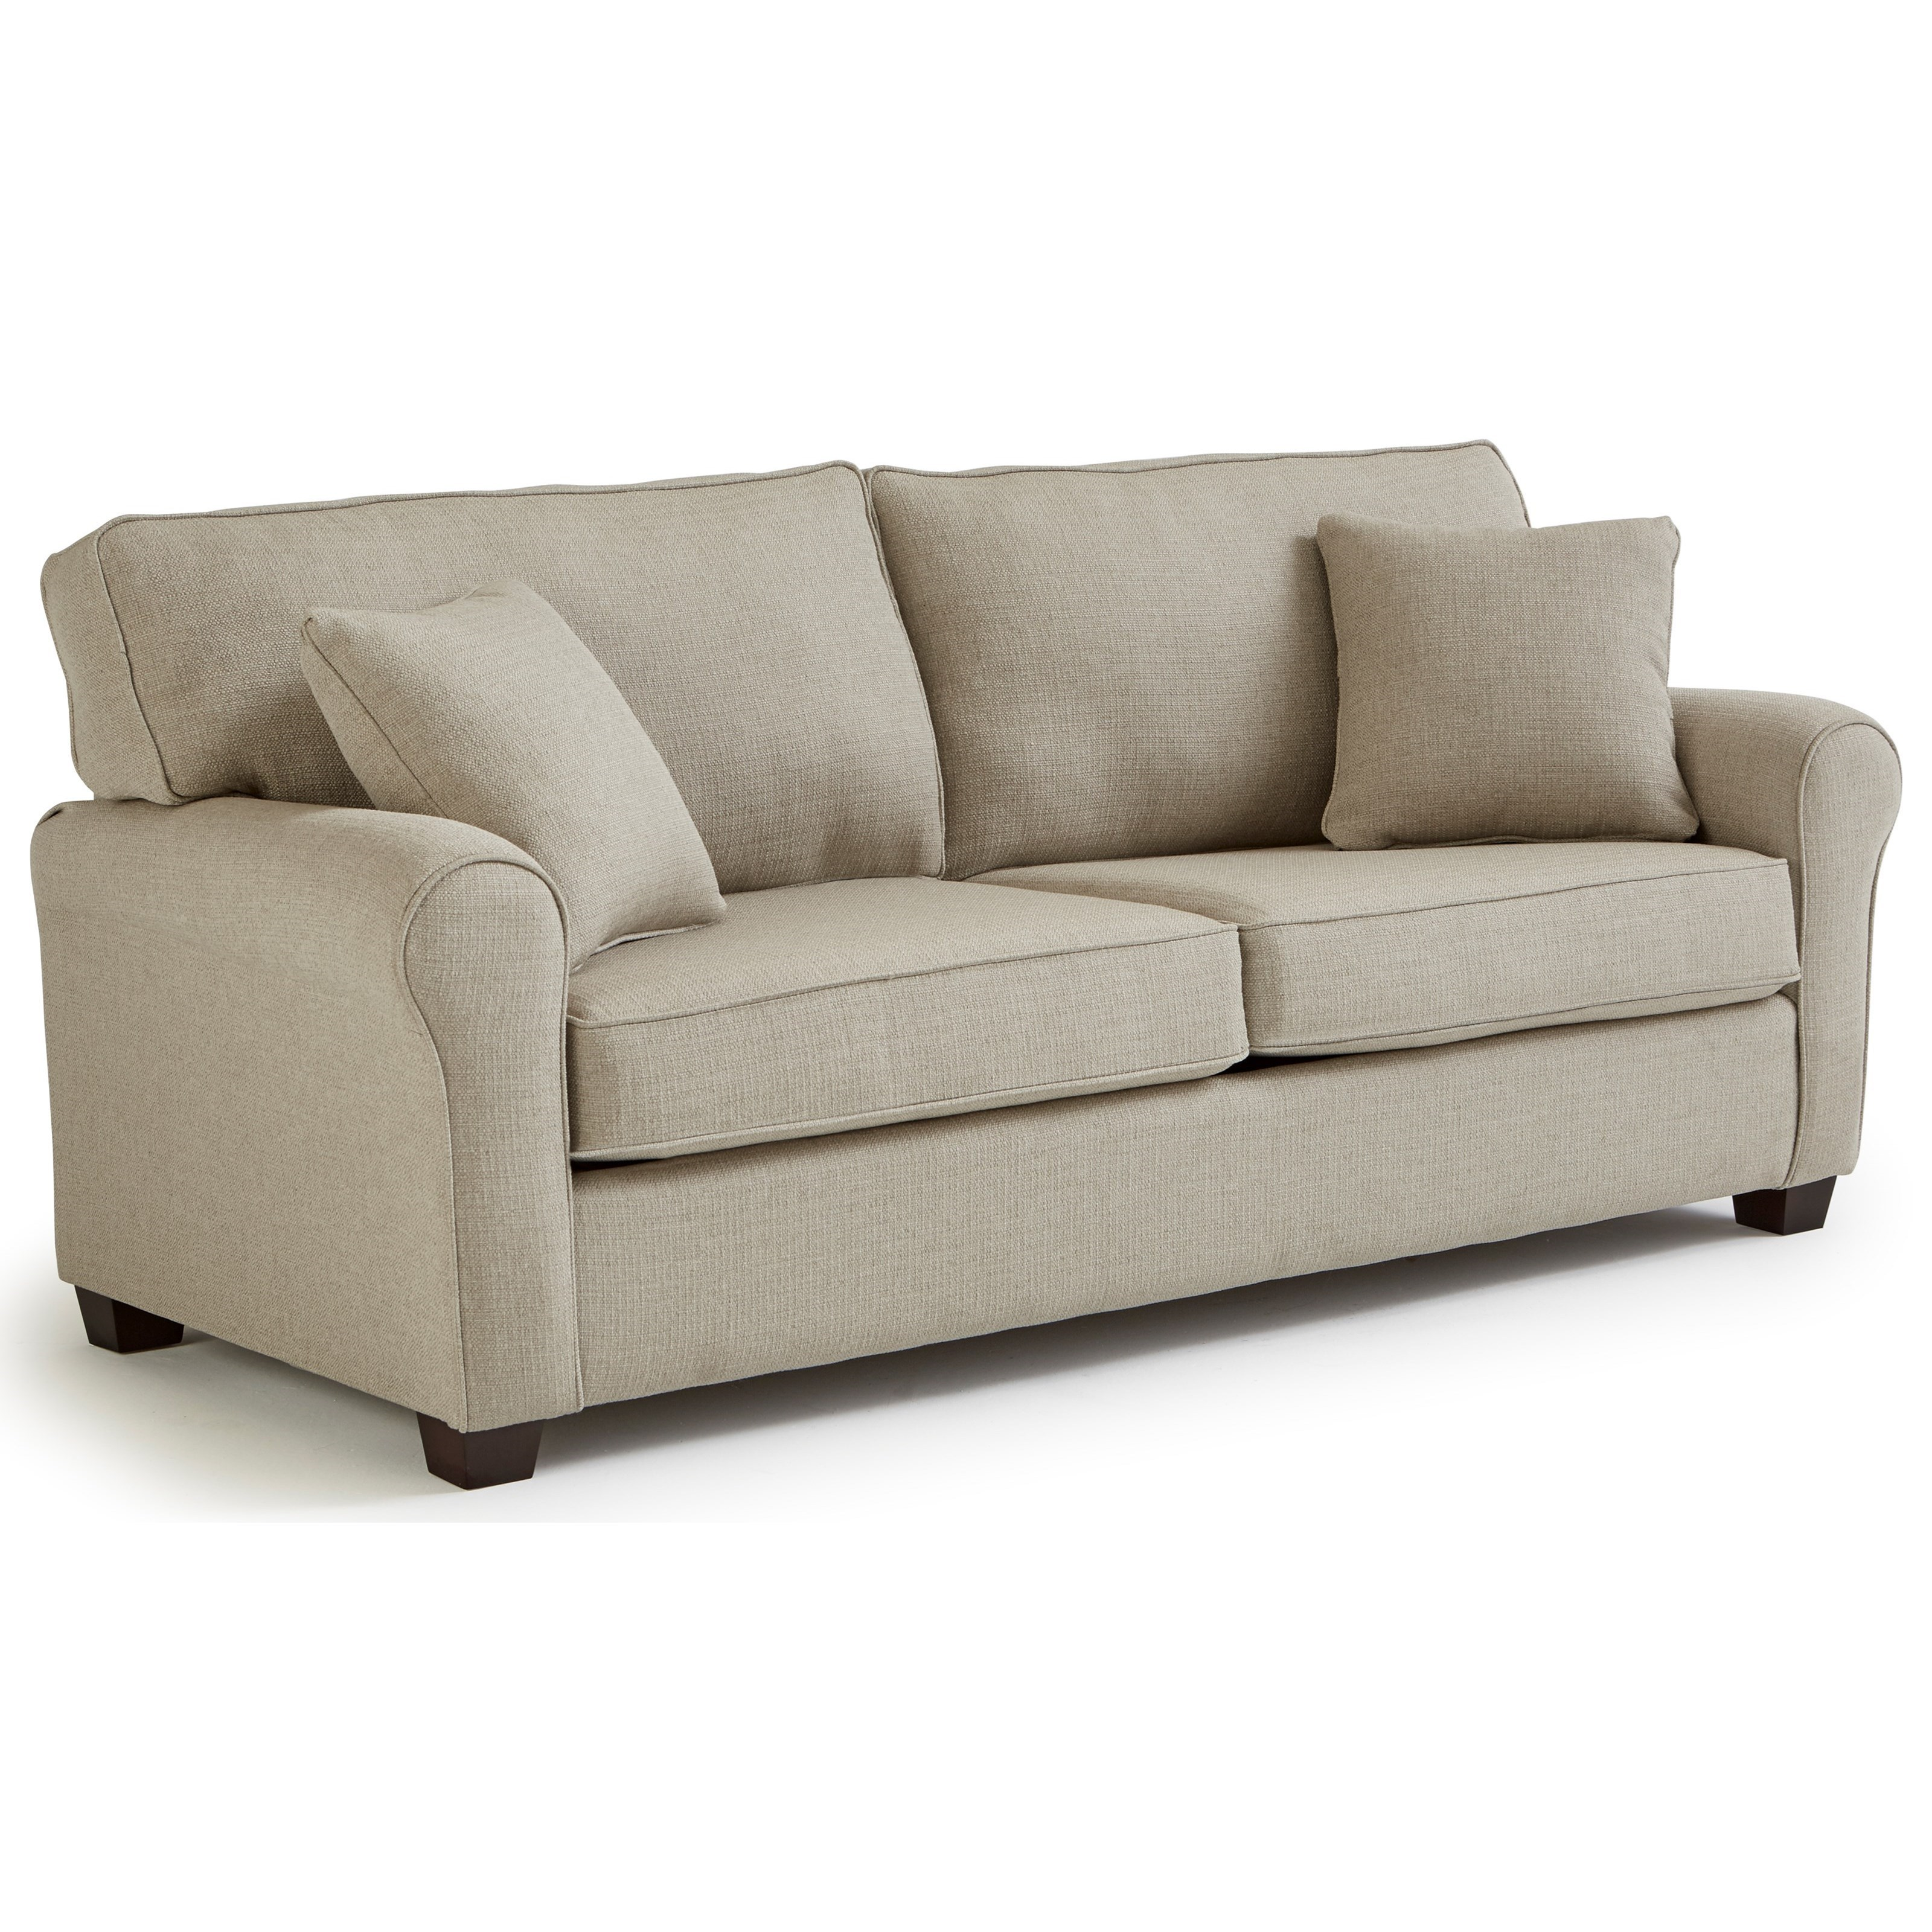 Queen Sofa Bed Shannon Queen Sofa Sleepr By Best Home Furnishings At Turk Furniture